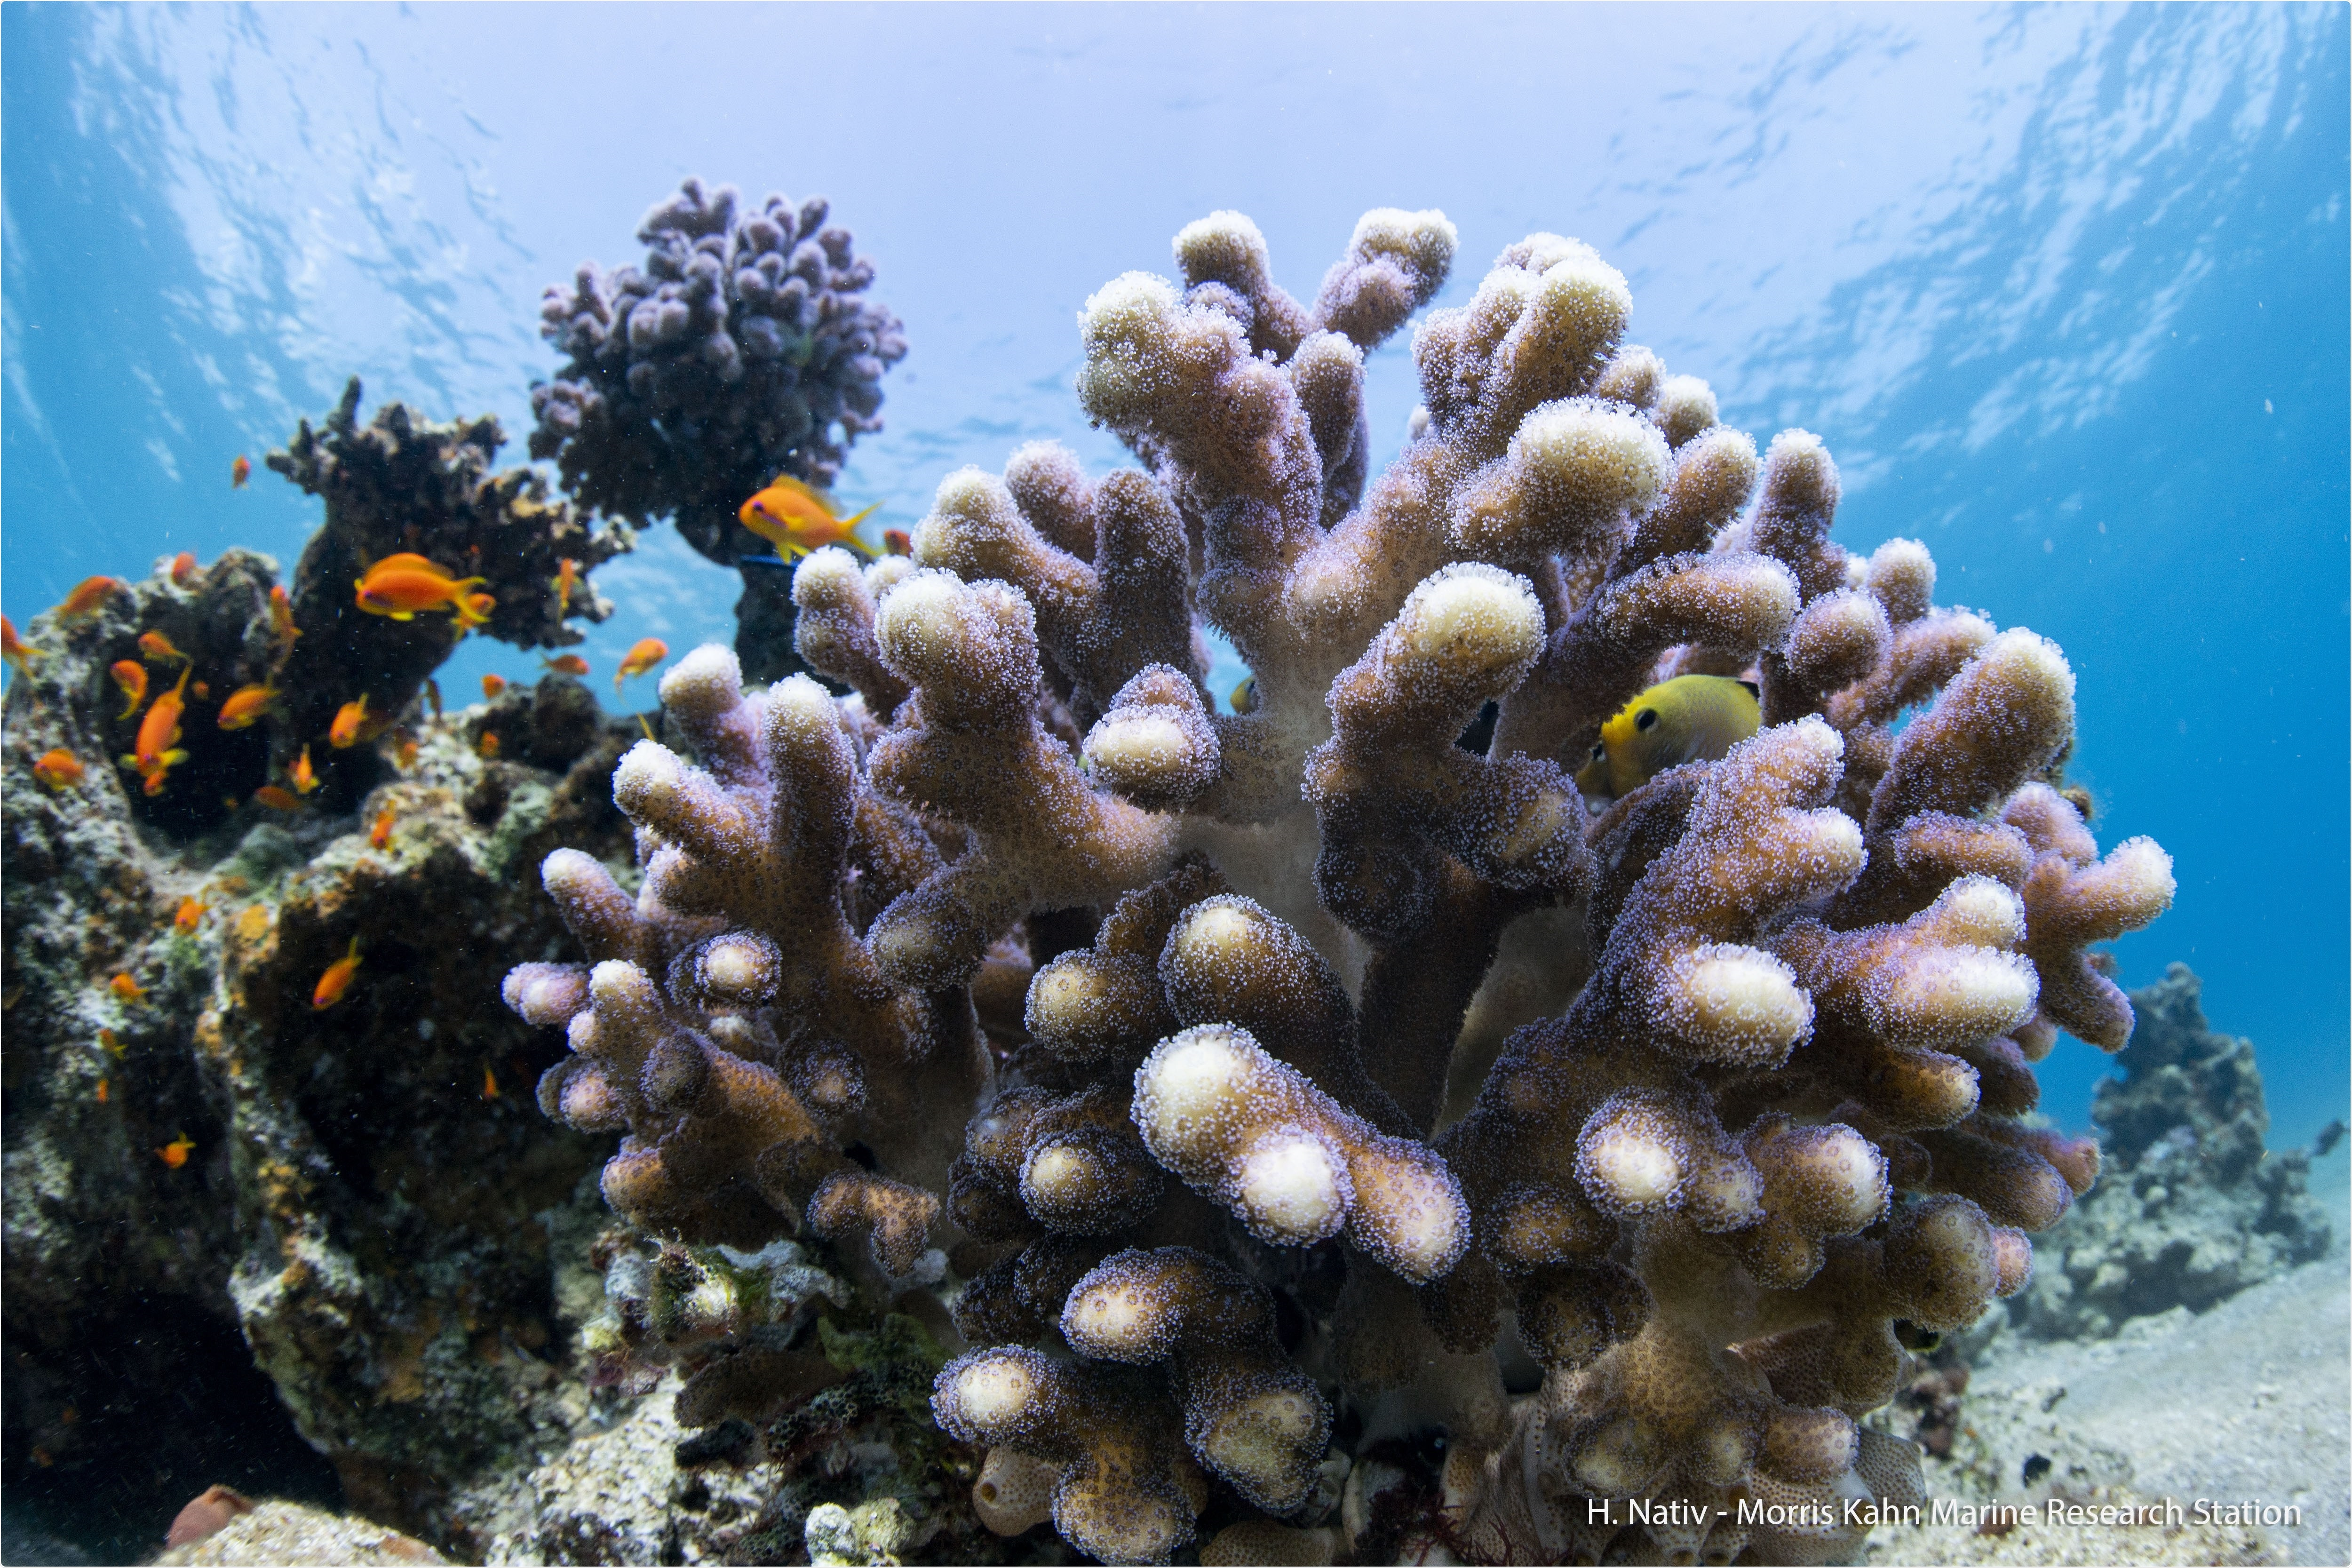 New atlas may support present and future conservation efforts to protect coral reefs